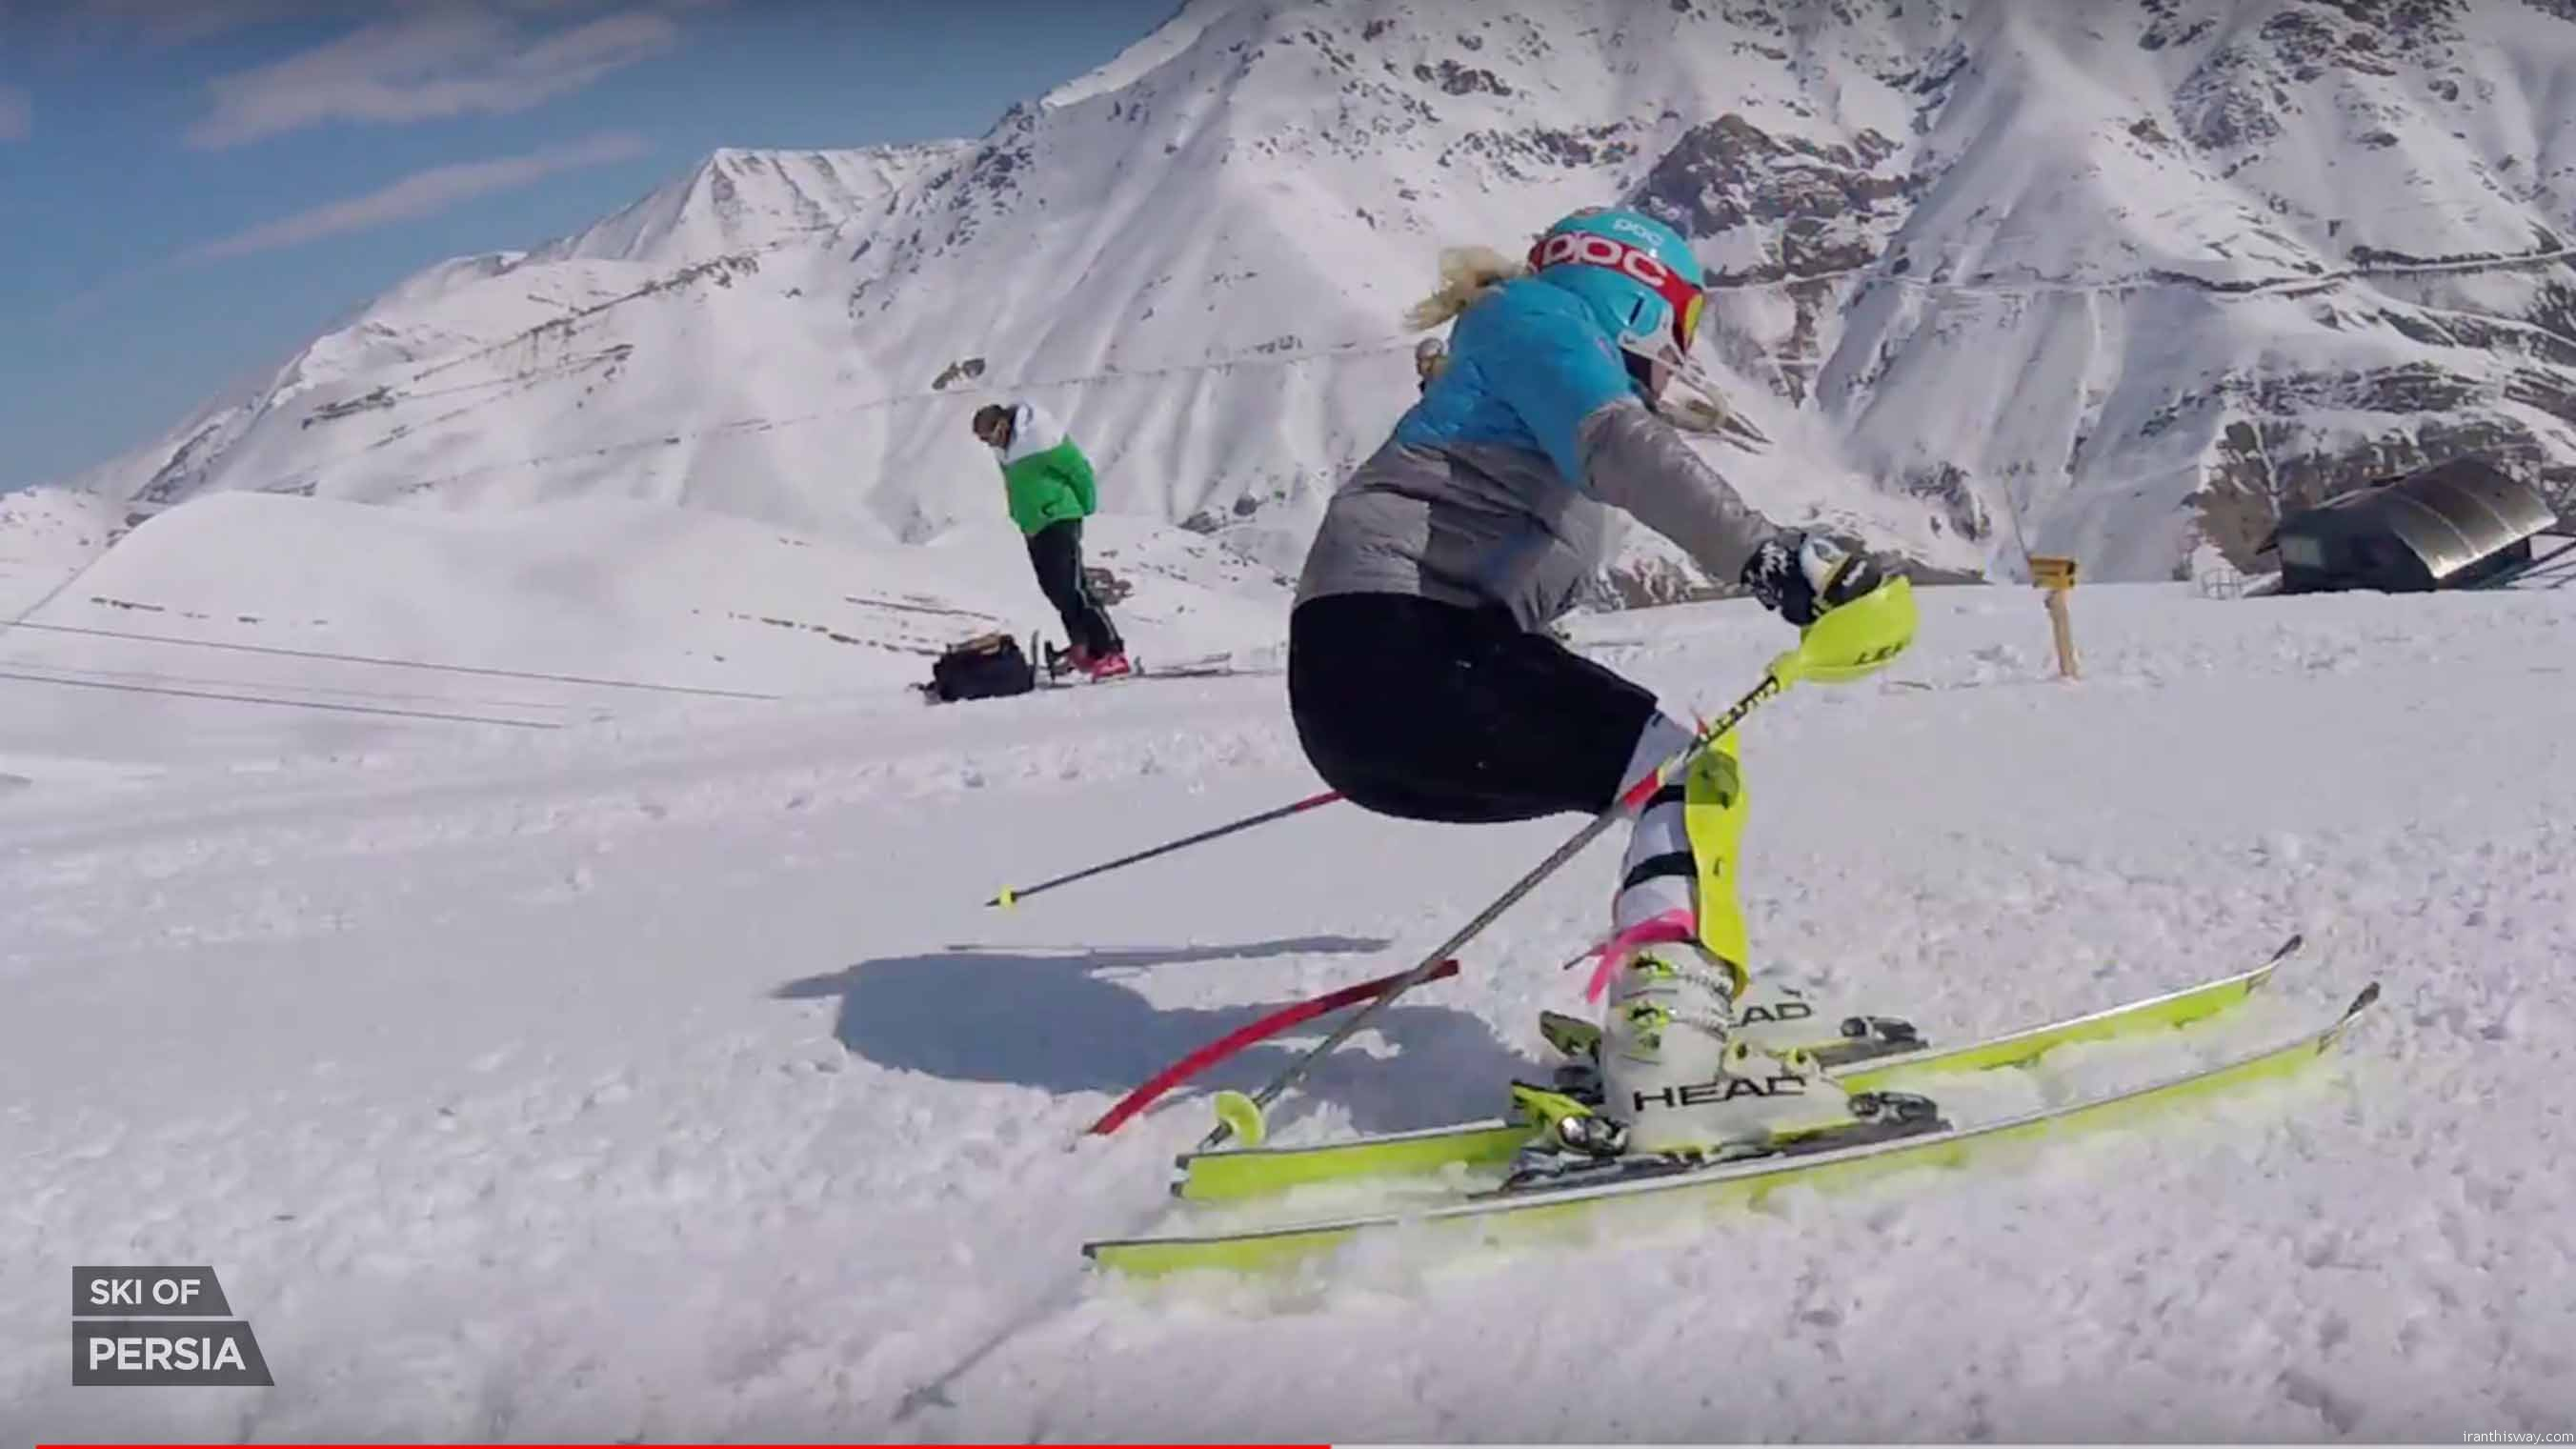 All you need to know about Skiing in Iran